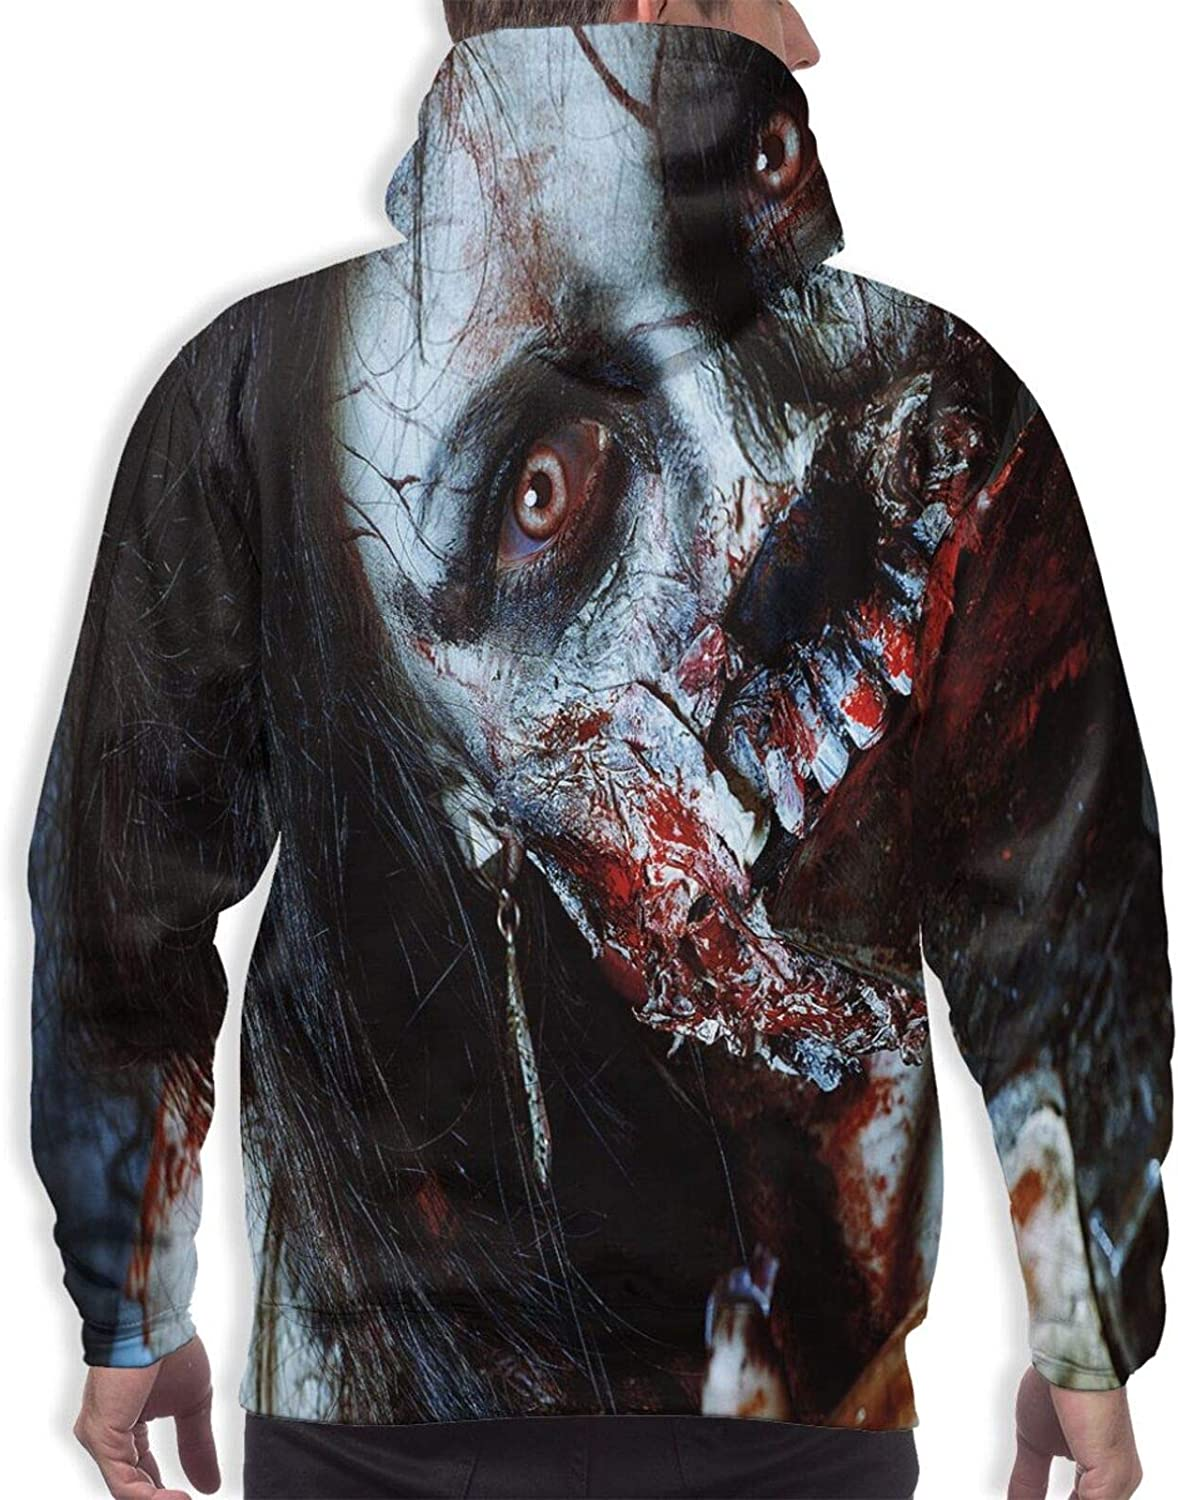 TENJONE Men's Hoodies Sweatshirts,Scary Dead Woman with A Bloody Axe Evil Fantasy Gothic Mystery Halloween Picture